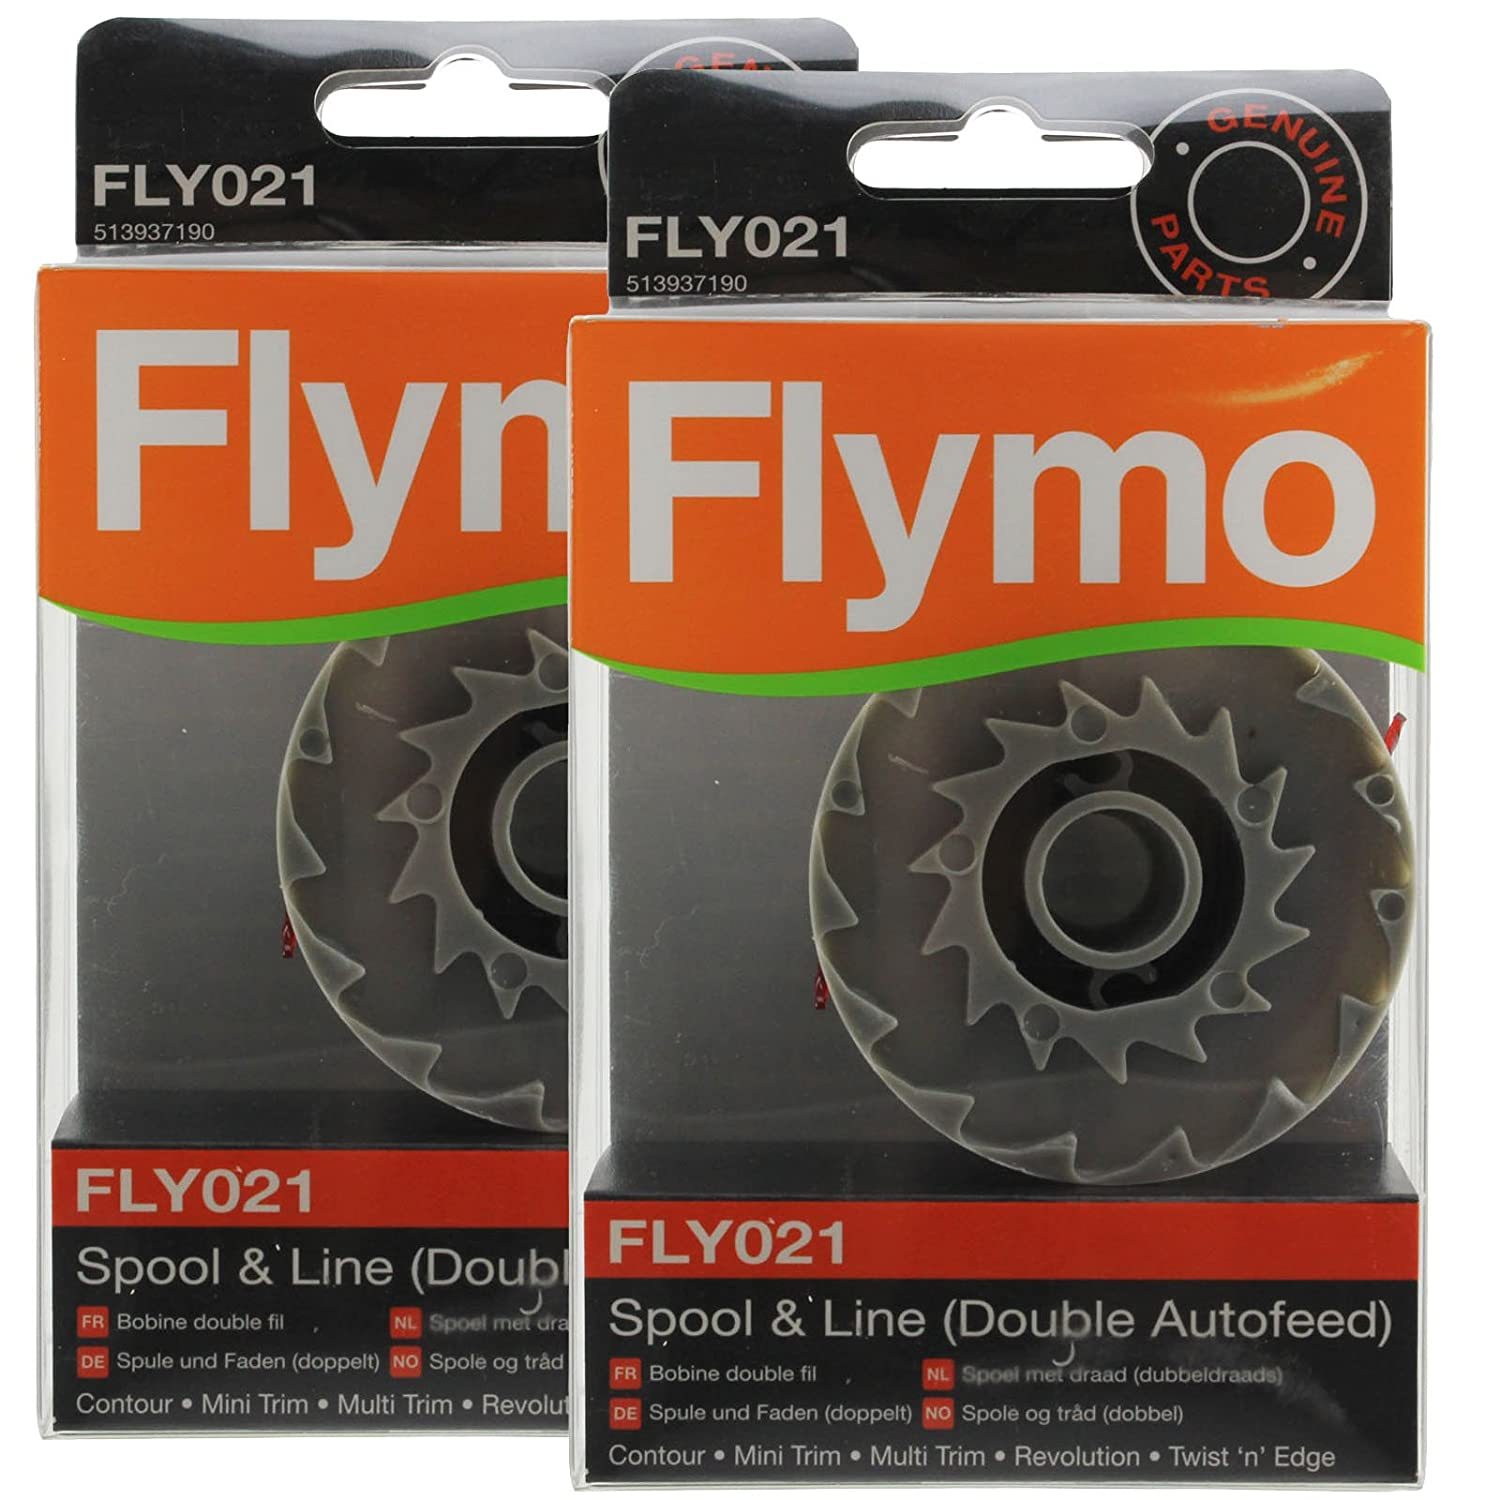 Genuine FLYMO Revolution 2000 2300 Strimmer Spool & Line Double Autofeed (Pack of 2, FLY021)